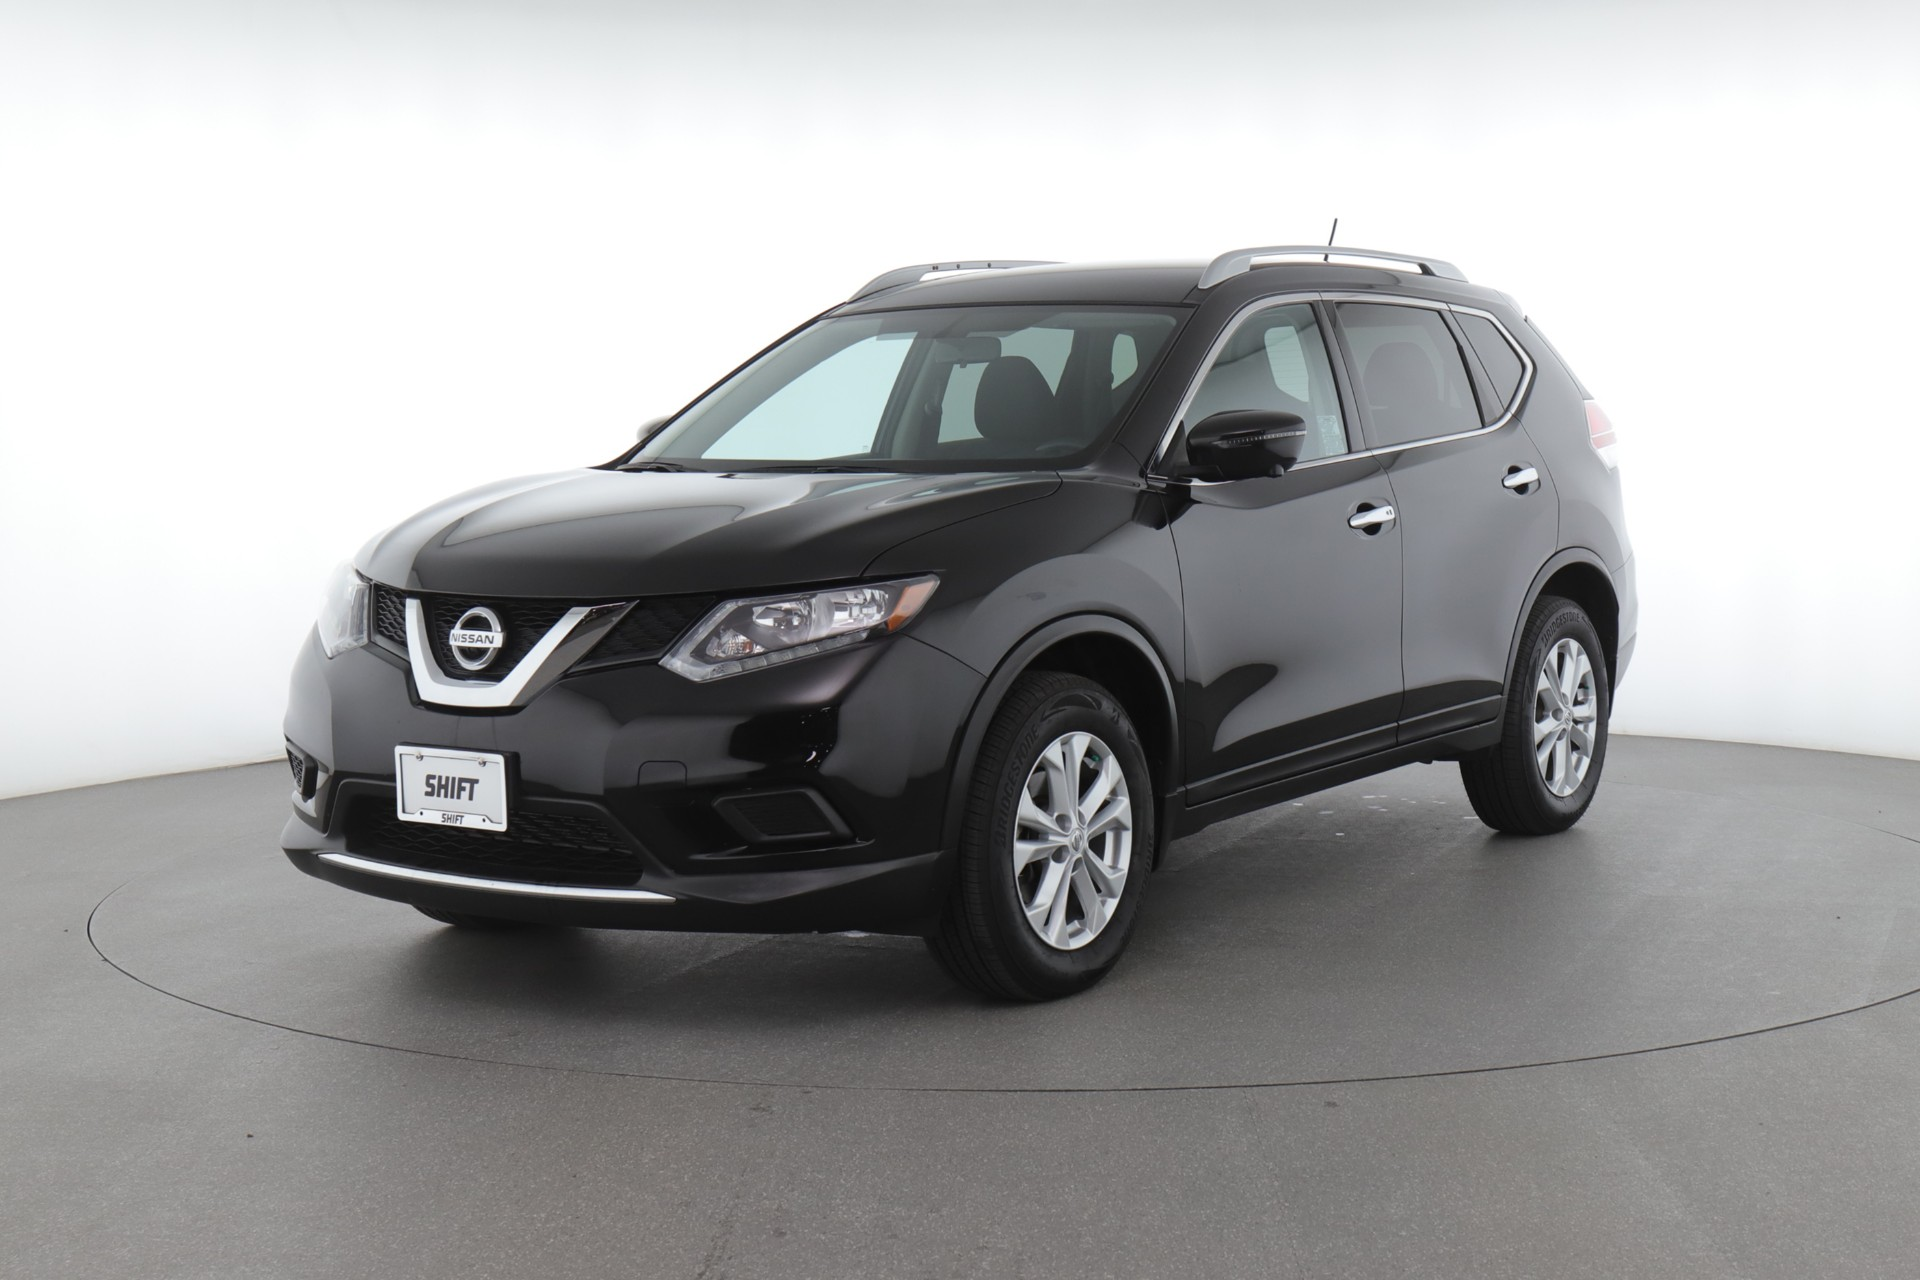 2016 Nissan Rogue SV (from $18,750)